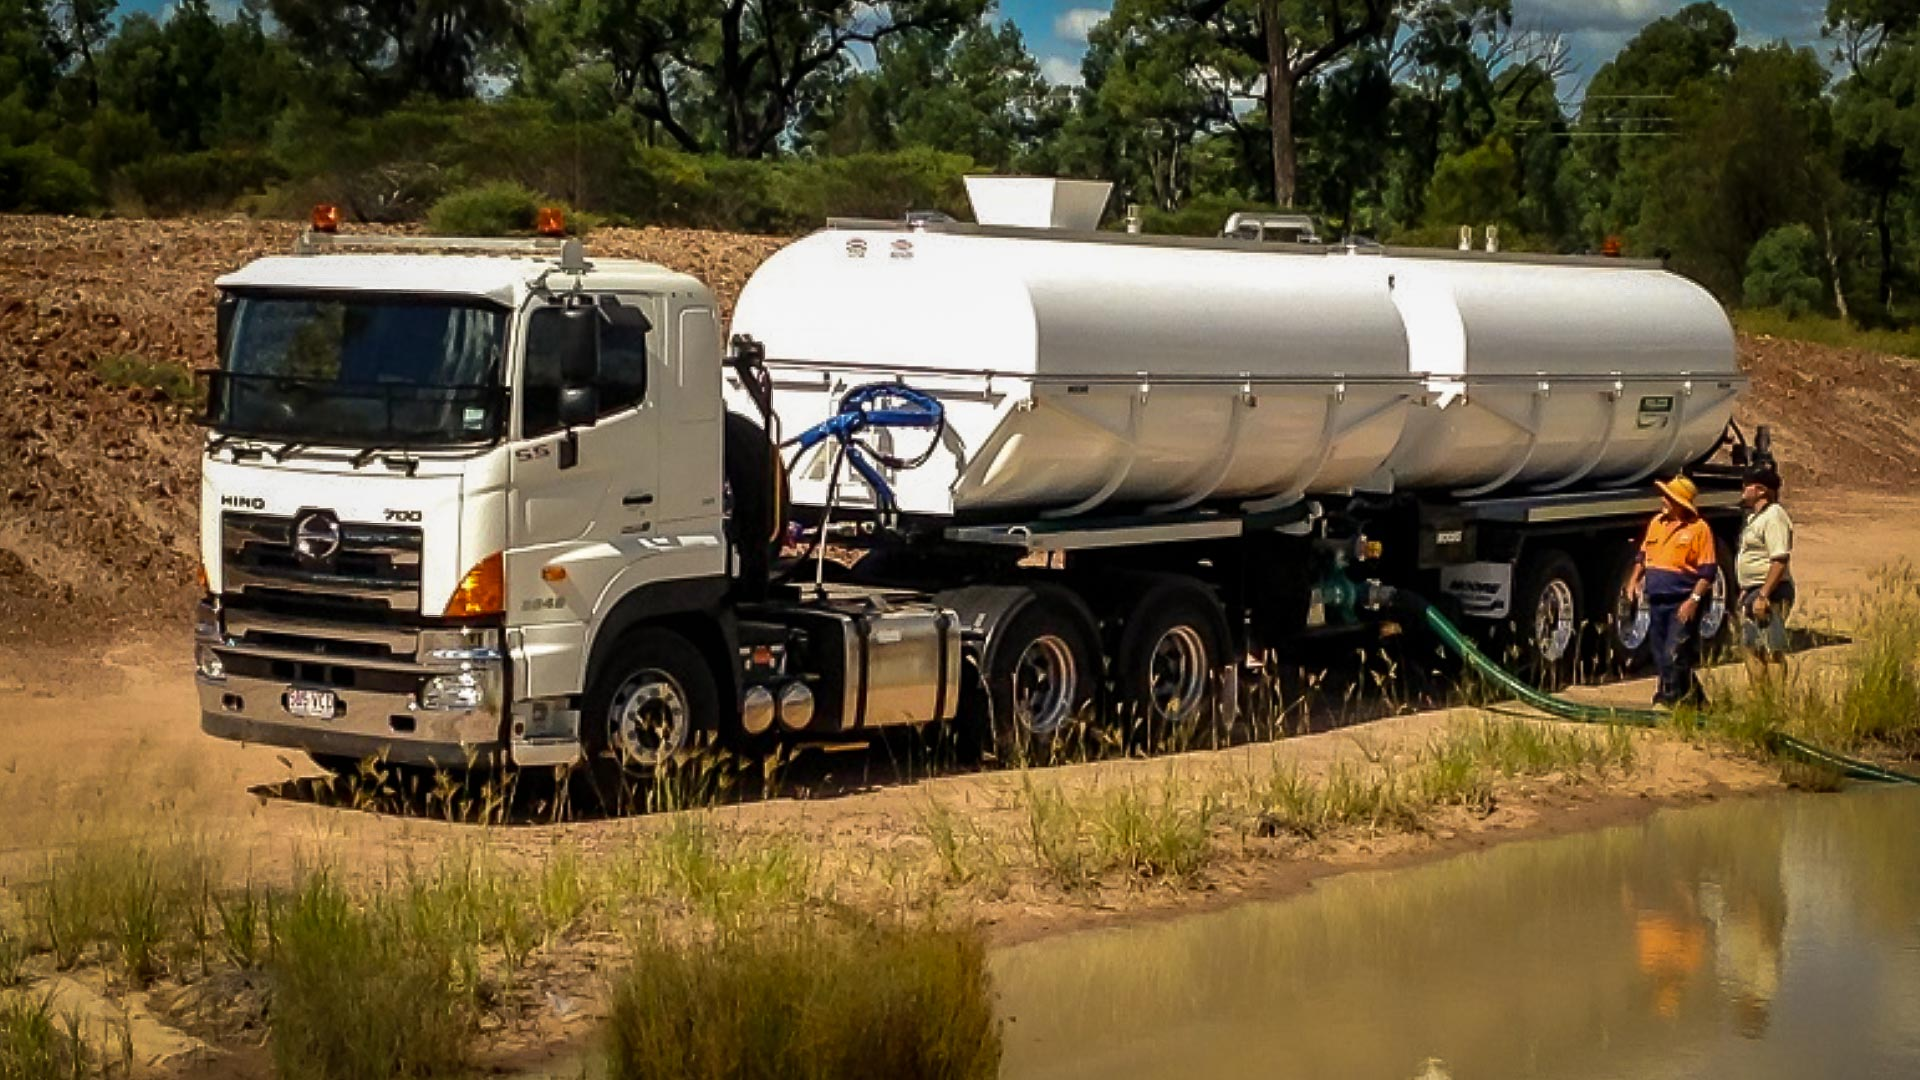 Western Downs Regional Council -Bulk Road Watering Tanker also used for Fire Fighting Re Supply